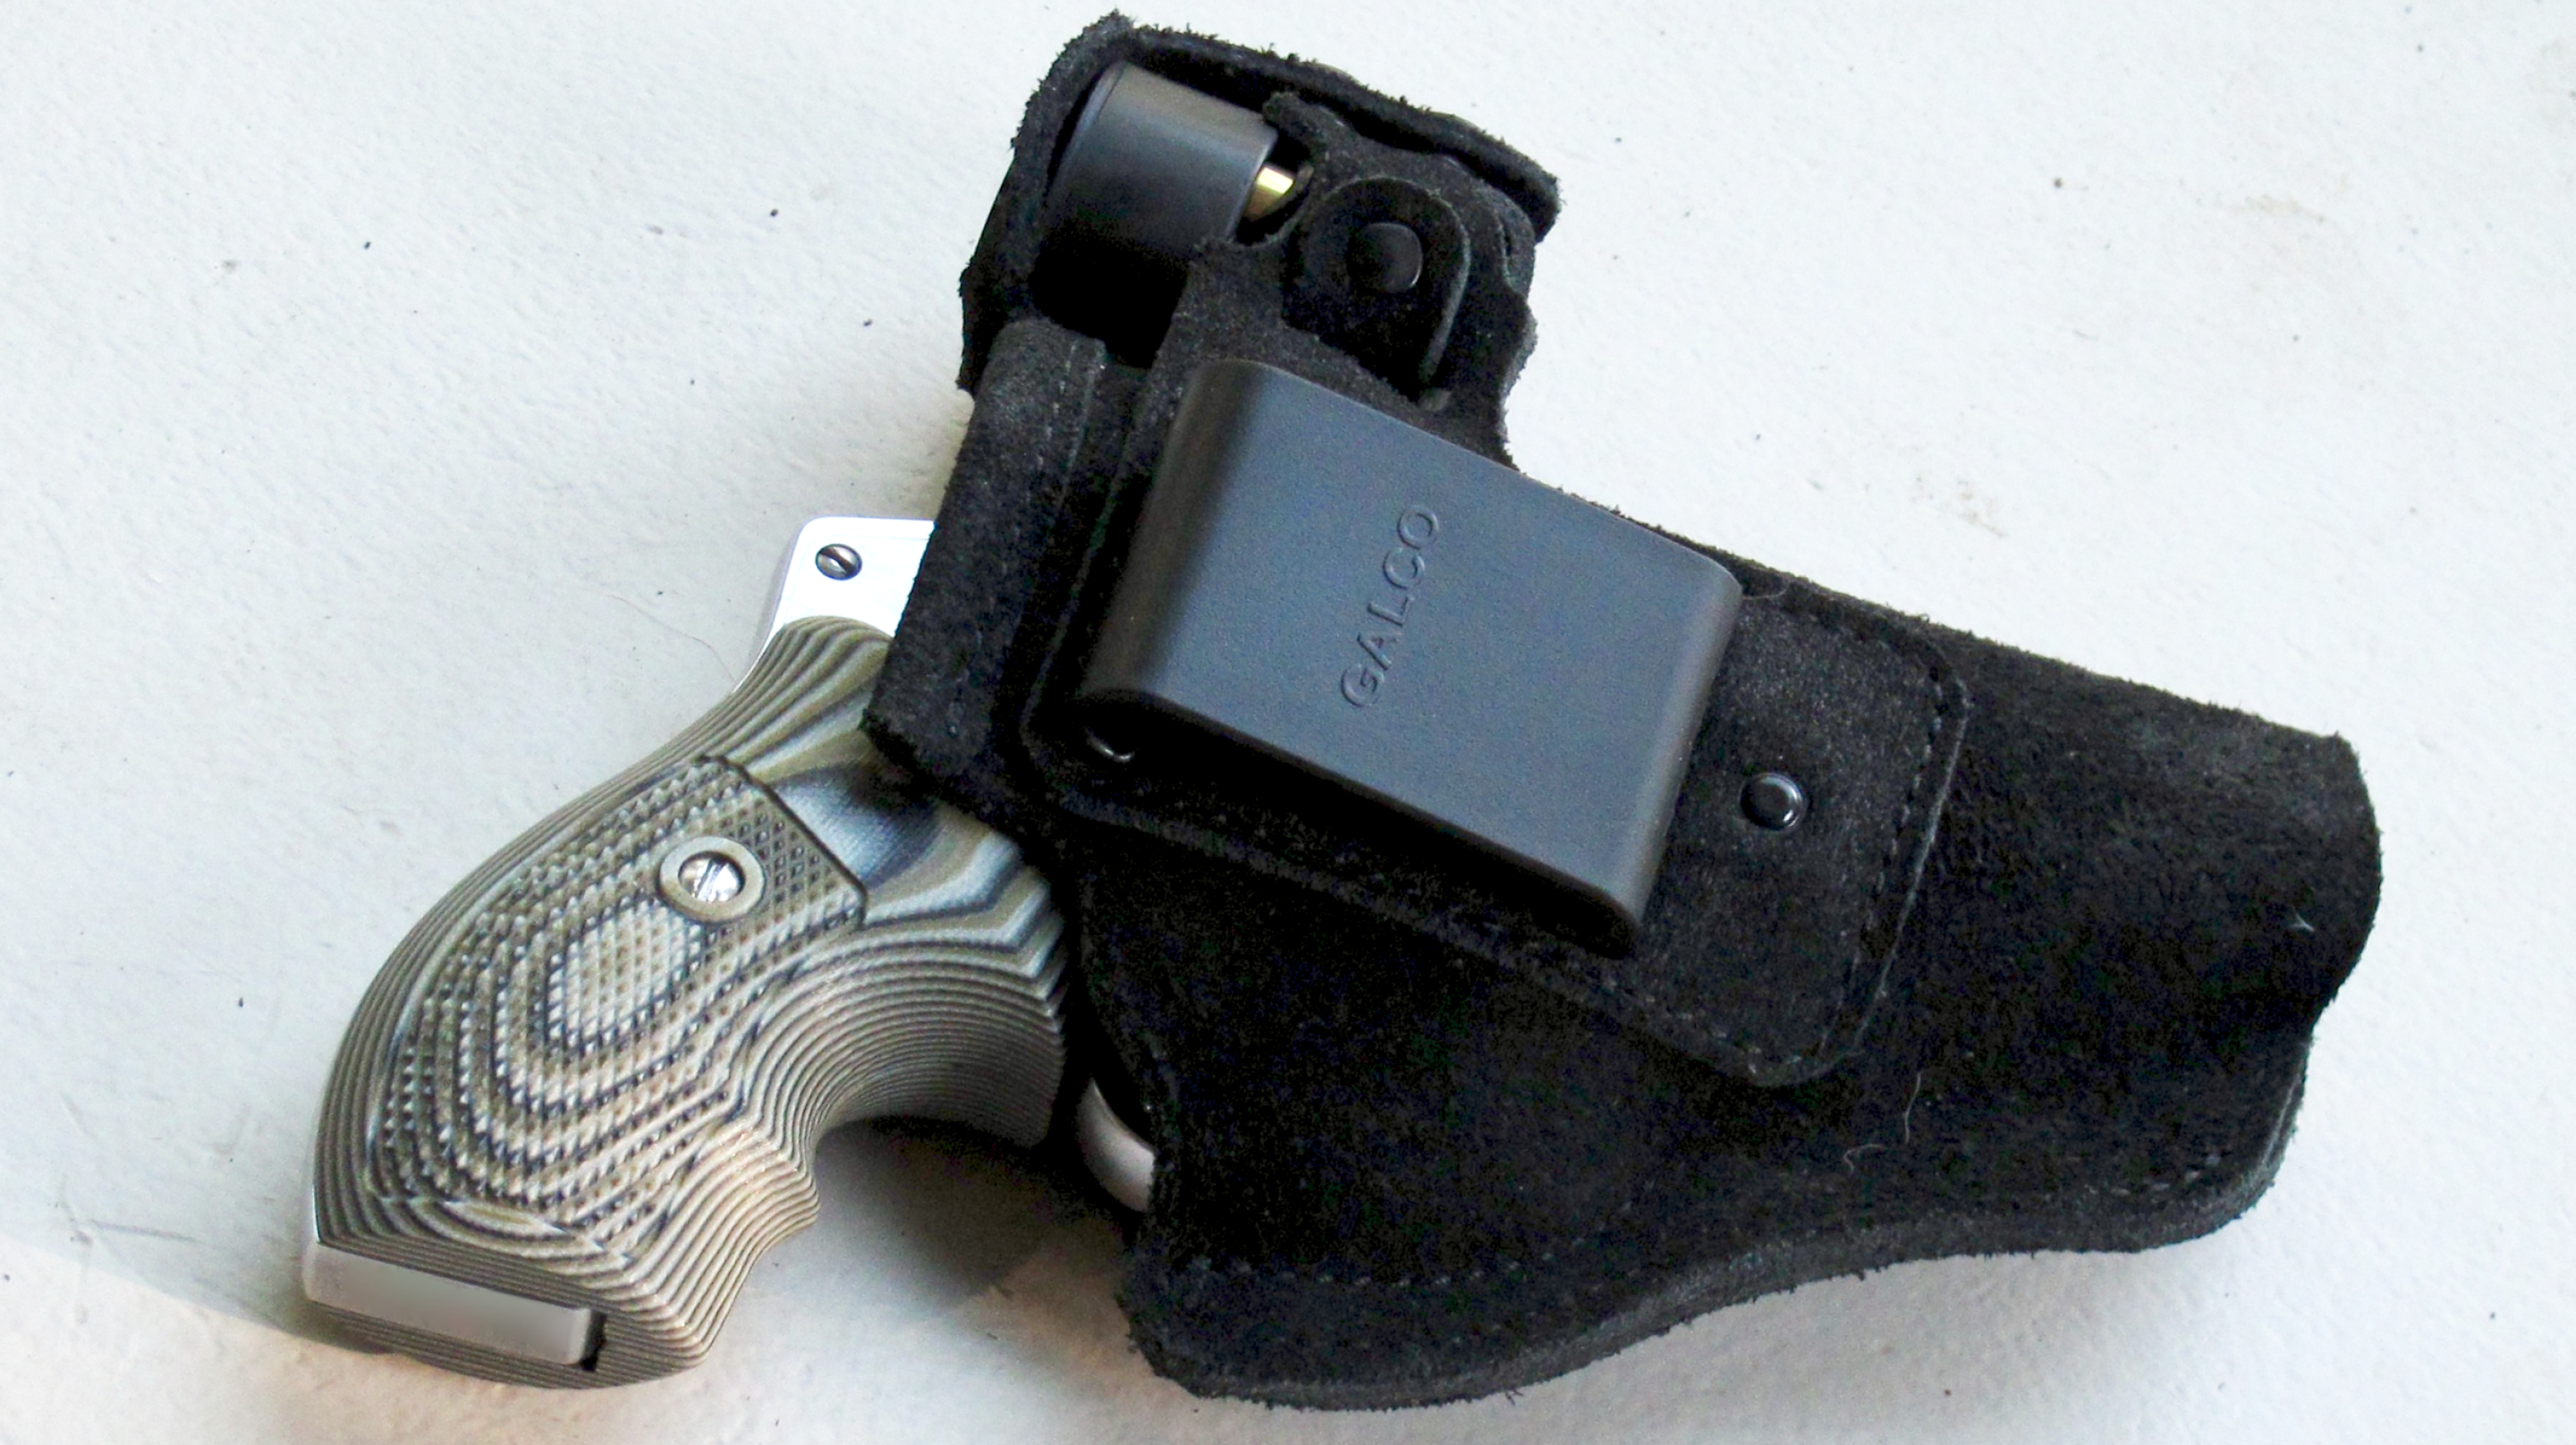 The Galco Walkabout J-Frame Holster | RevolverGuy.com